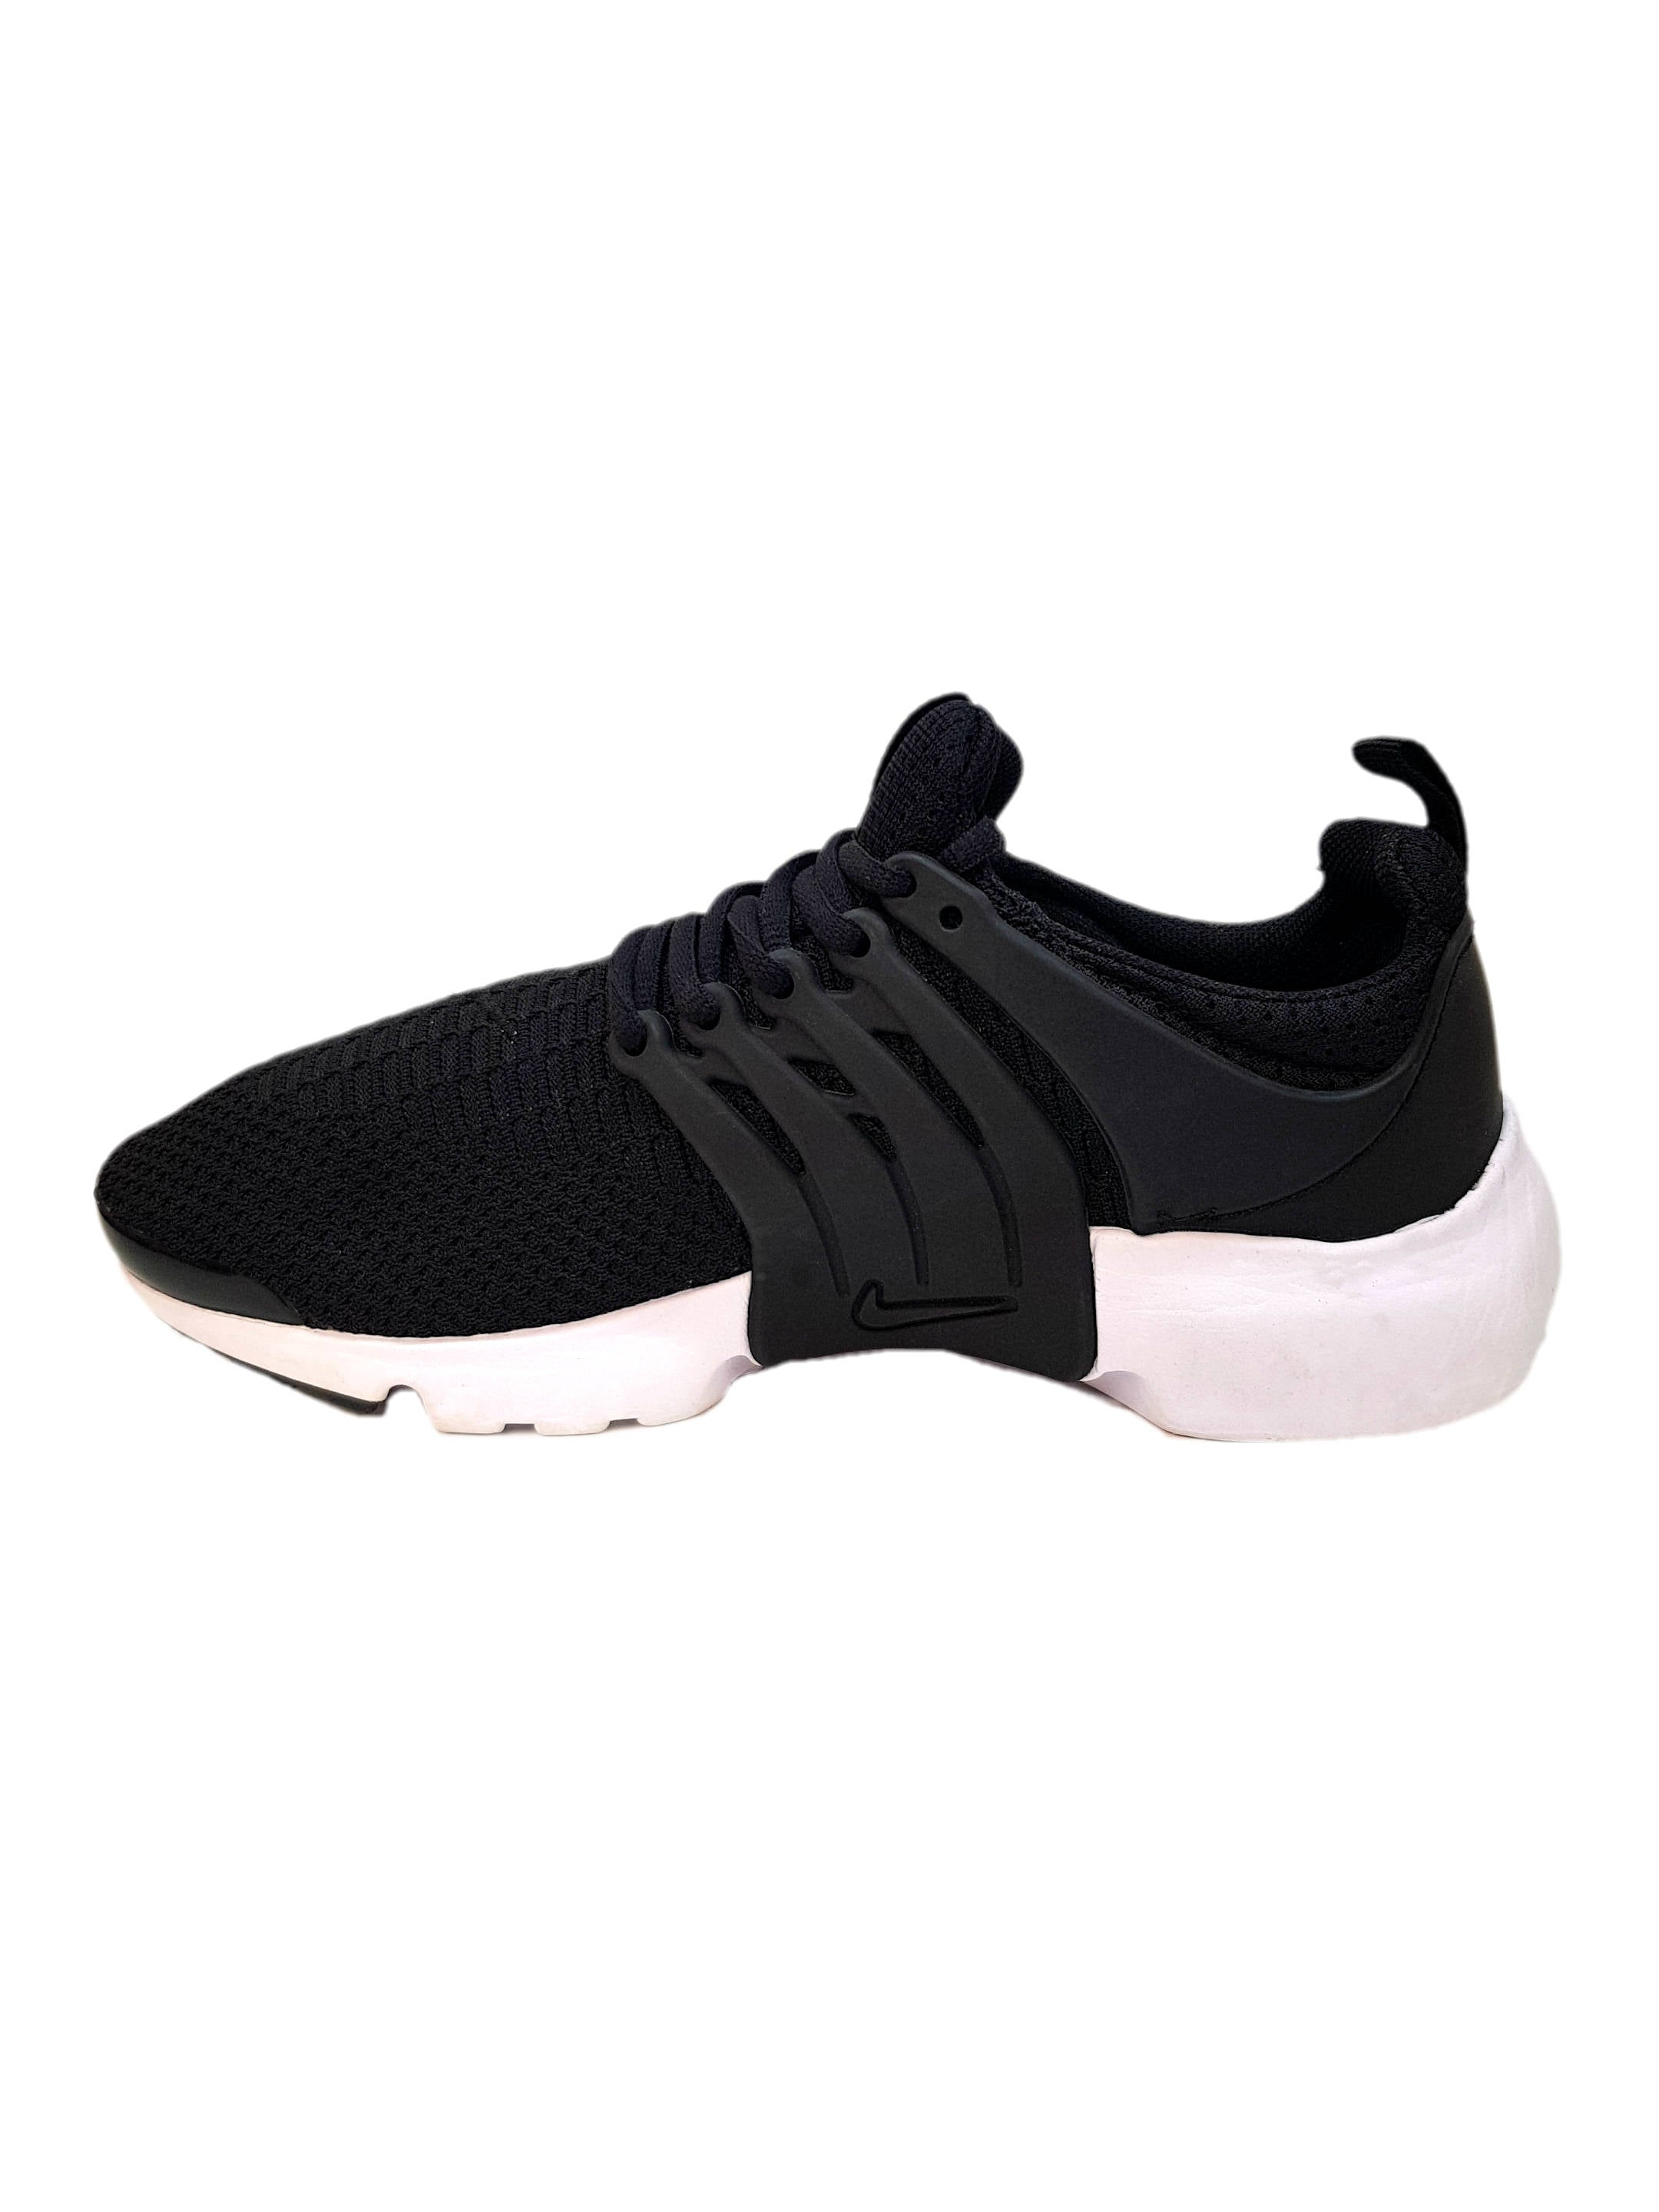 Presto Low Cut - Black/White